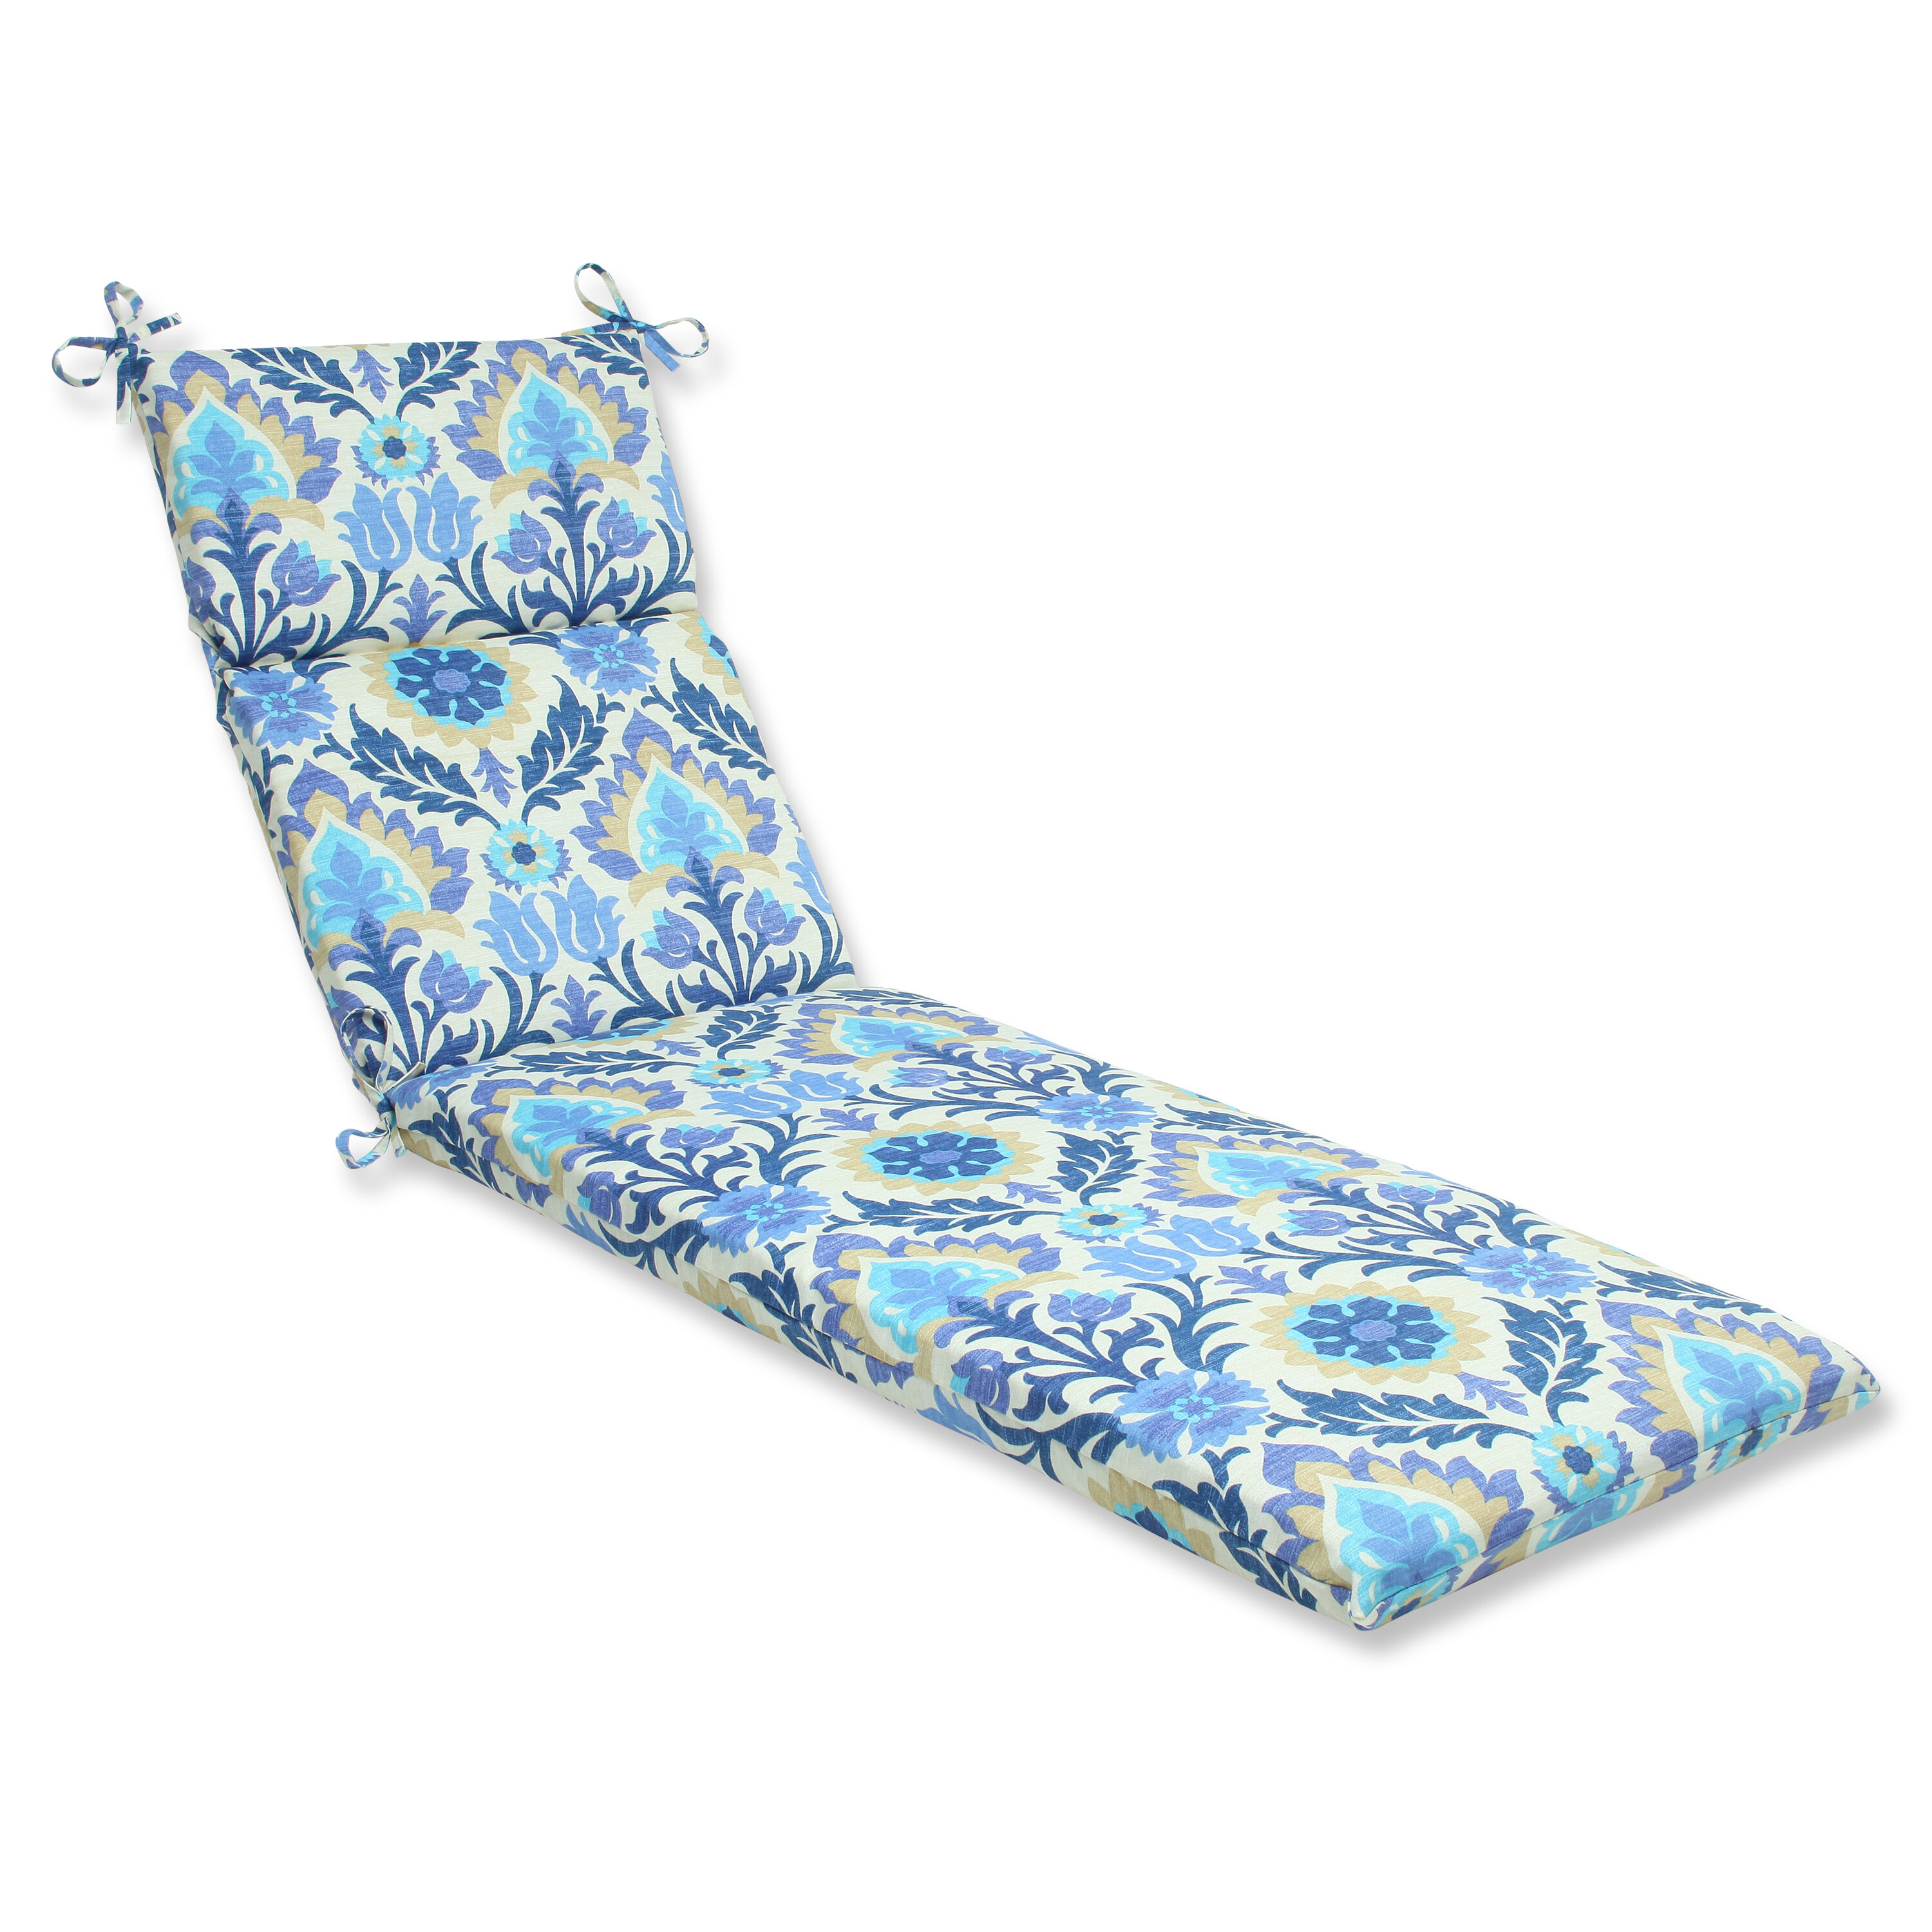 Alcott Hill Rockhill Indoor Outdoor Chaise Lounge Cushion Reviews Wayfair